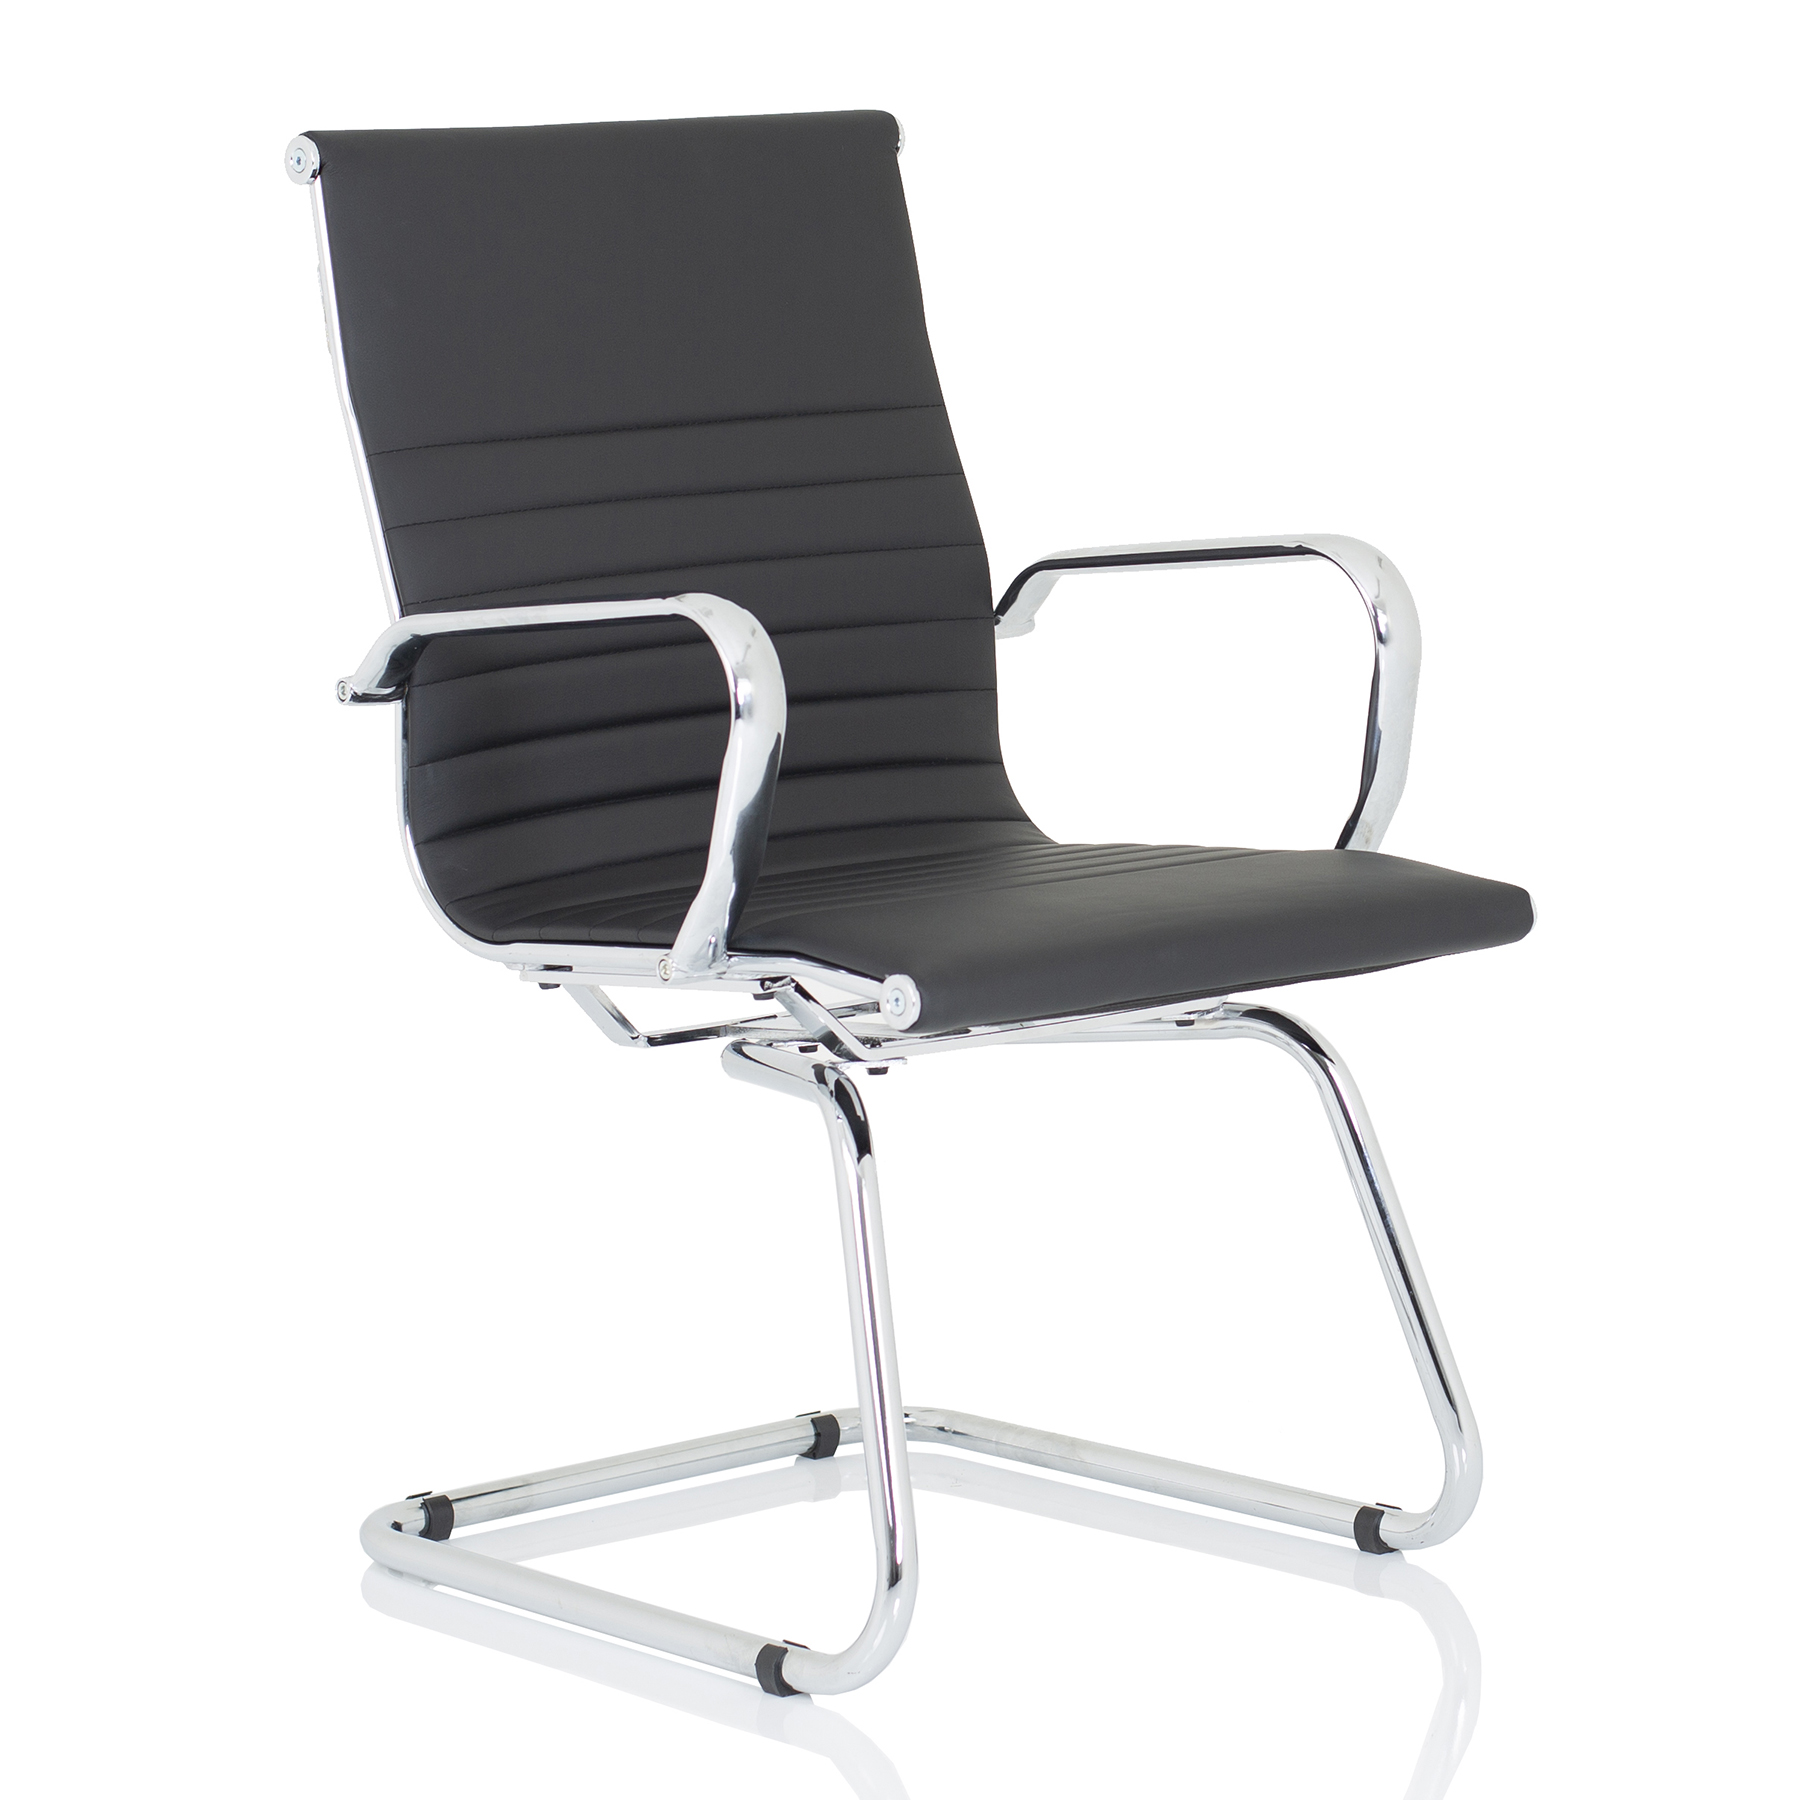 CHAIR OF THE WEEK Nola Italian Inspired Cantilever Black Leather